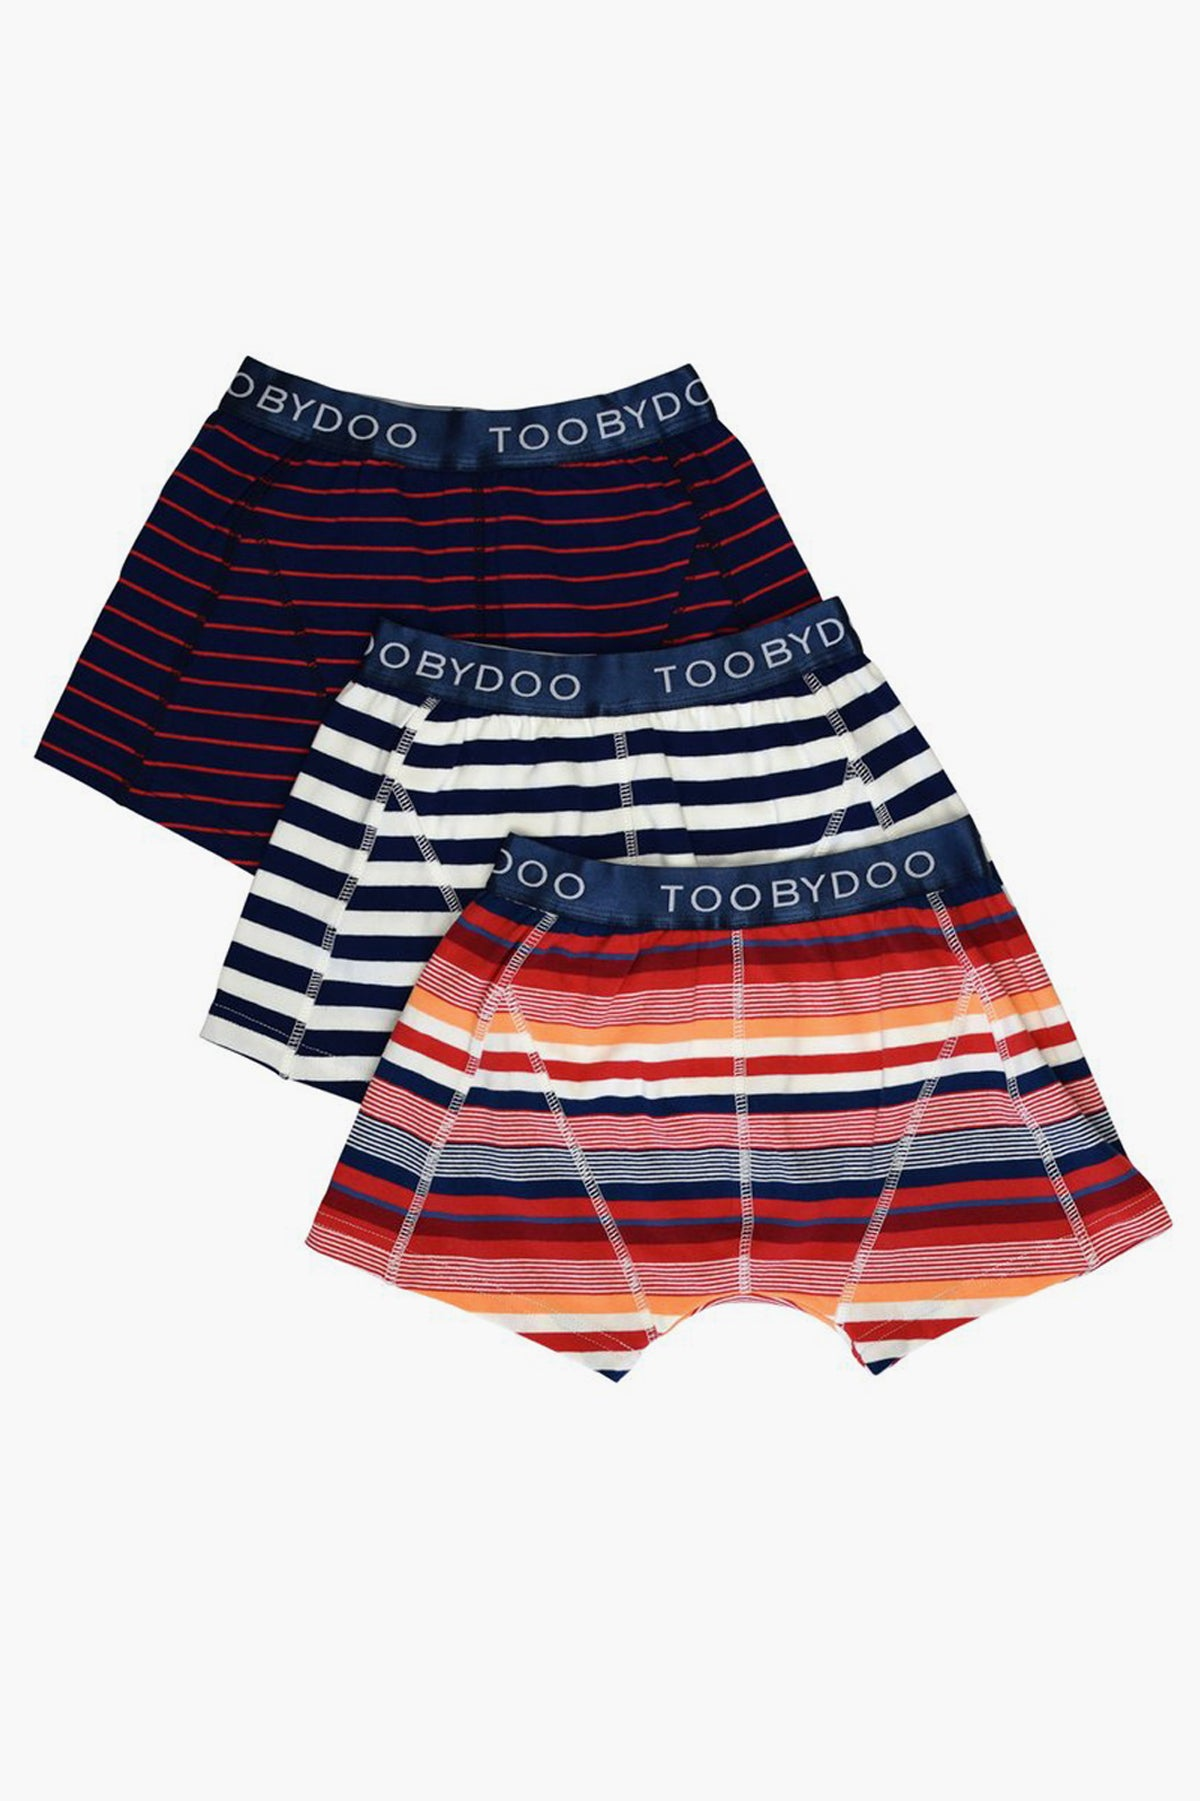 Toobydoo Boys 3 Pack Boxer Shorts - Multi Stripe